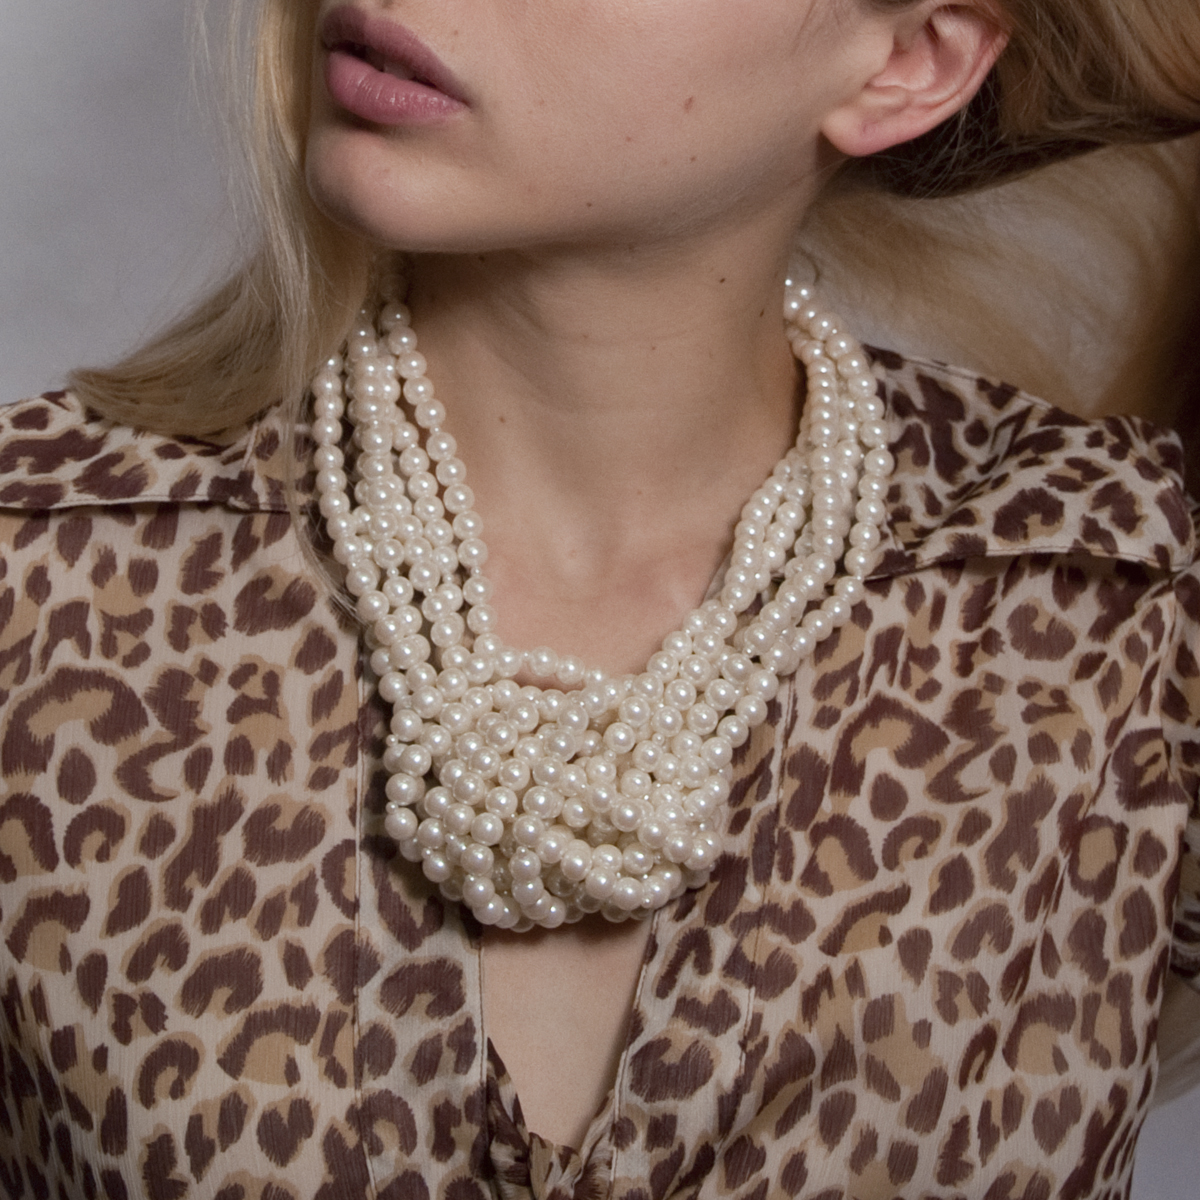 Shown above is Boyer New York's Pearl Knot Necklace.